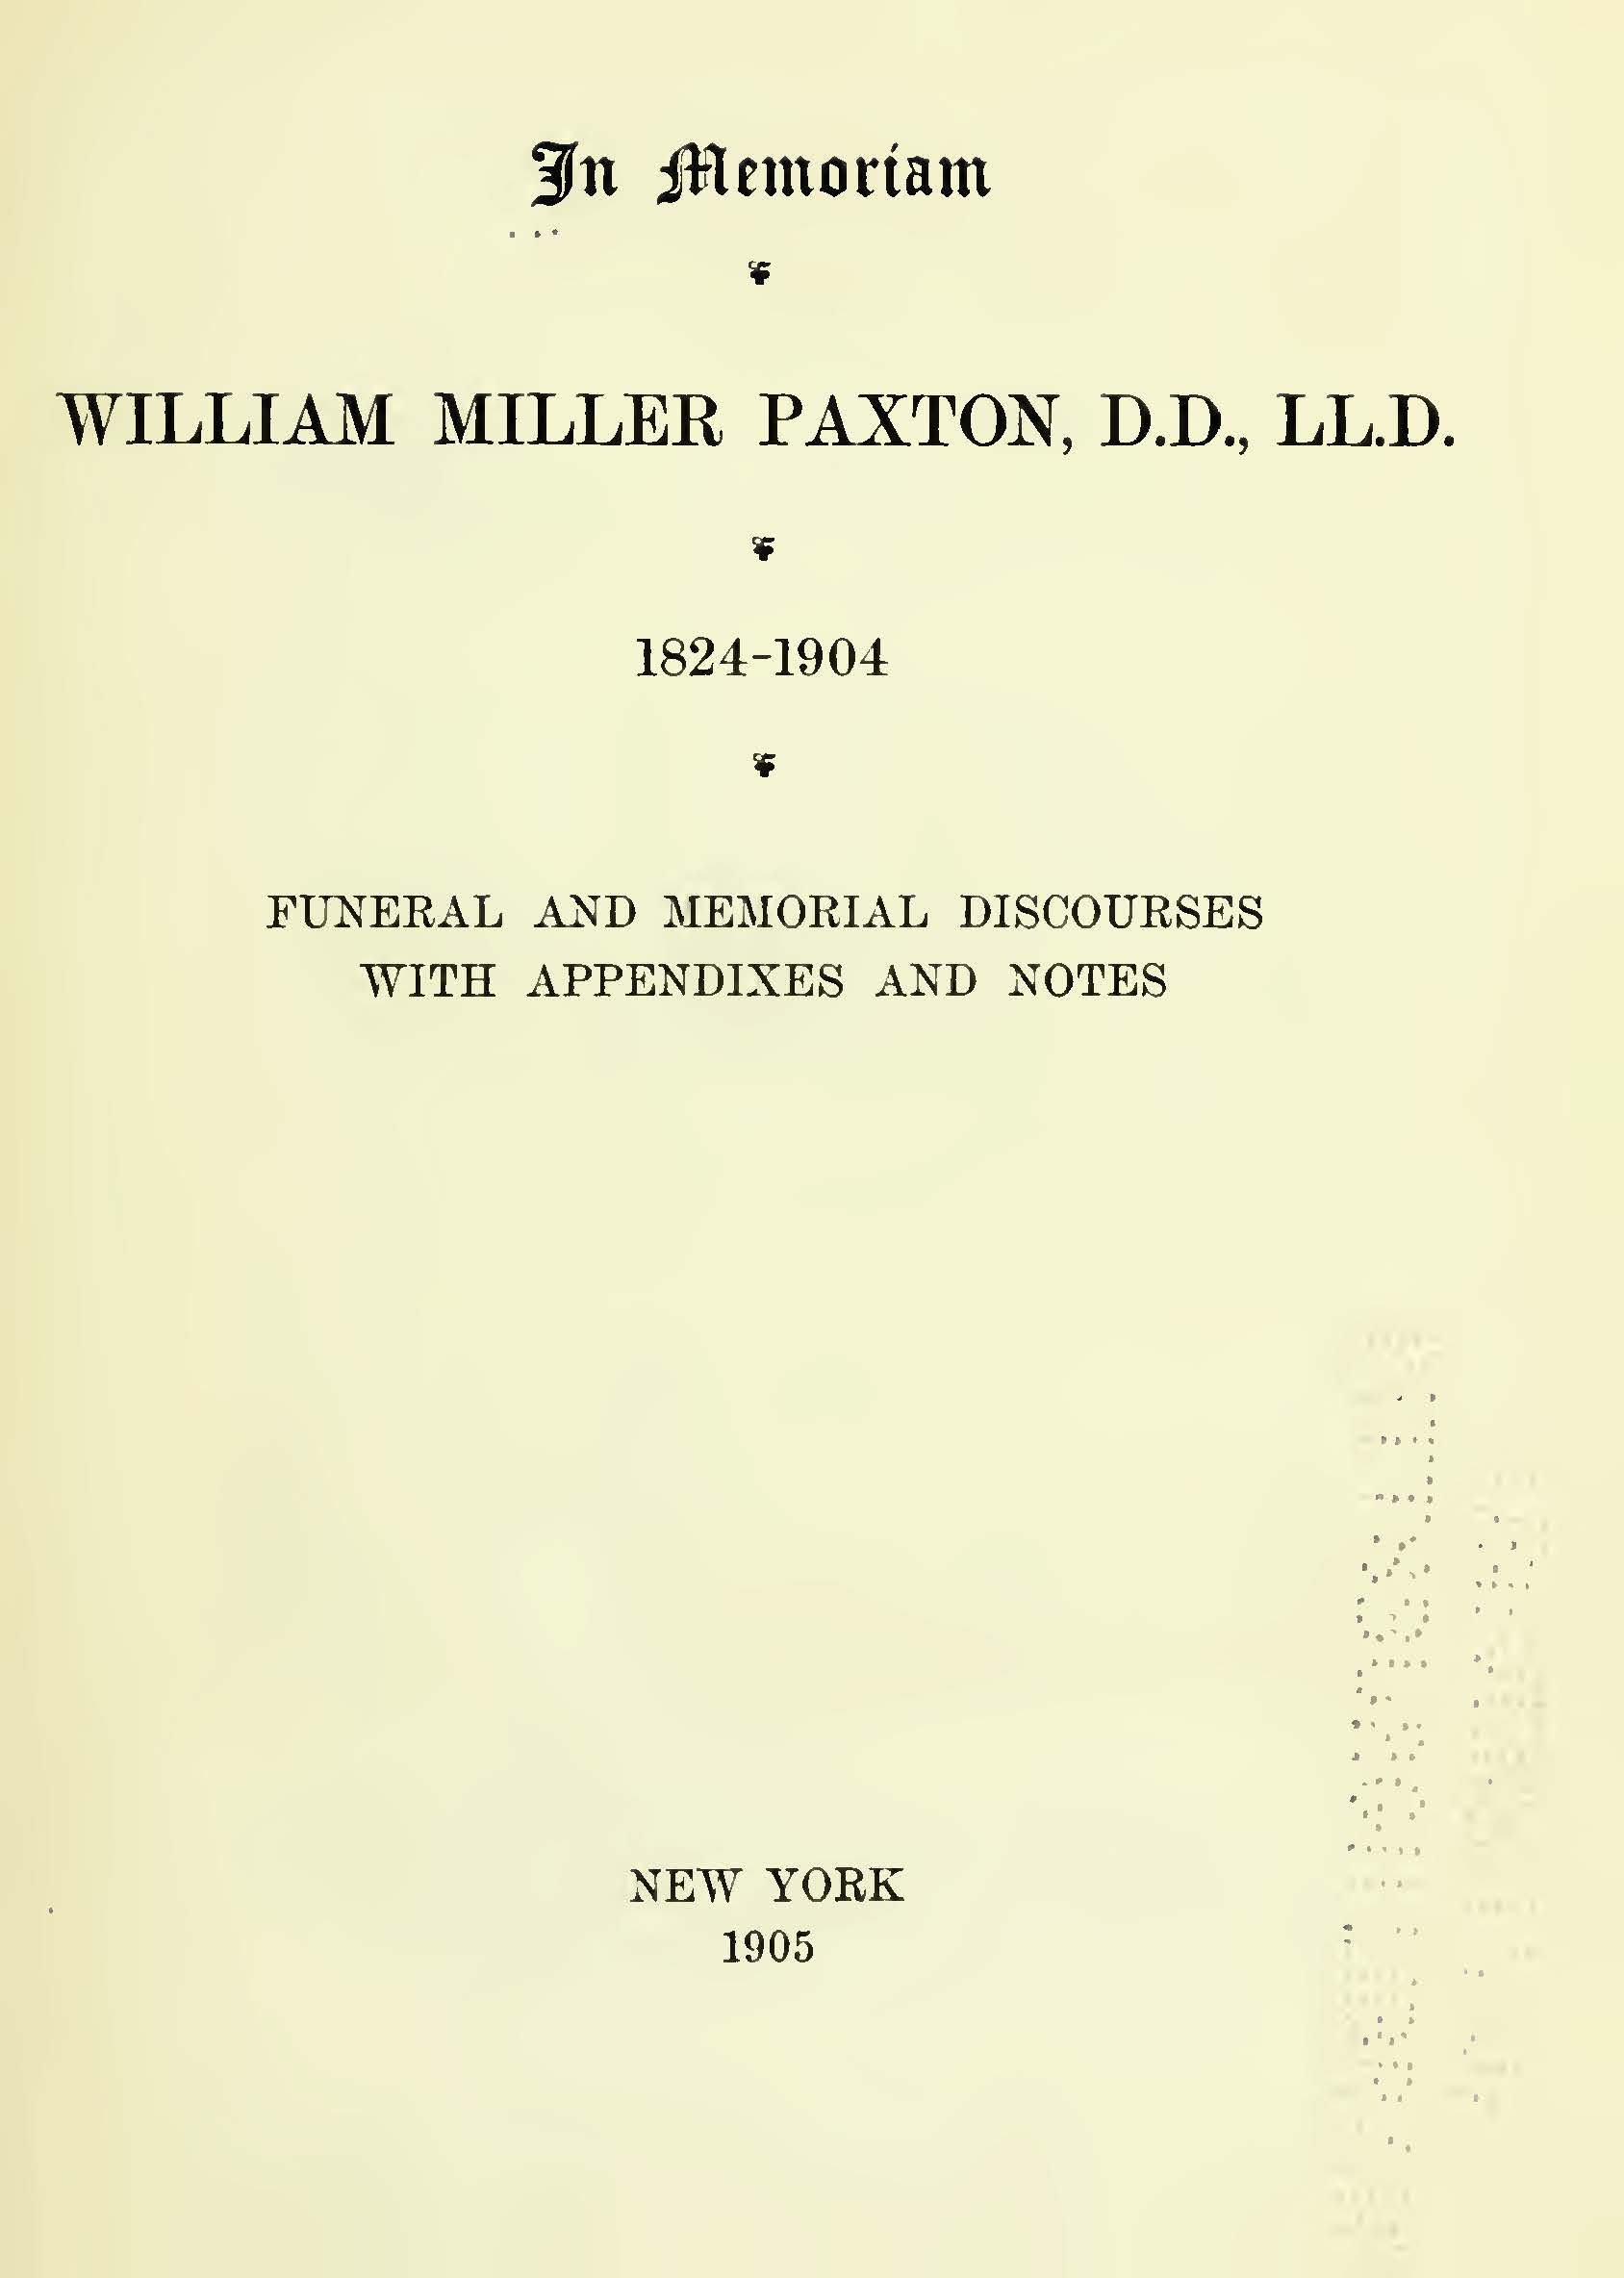 DeWitt, John, In Memoriam, William Miller Paxton, D.D., LL.D., 1824-1904 Funeral and Memorial Discourses Title Page.jpg